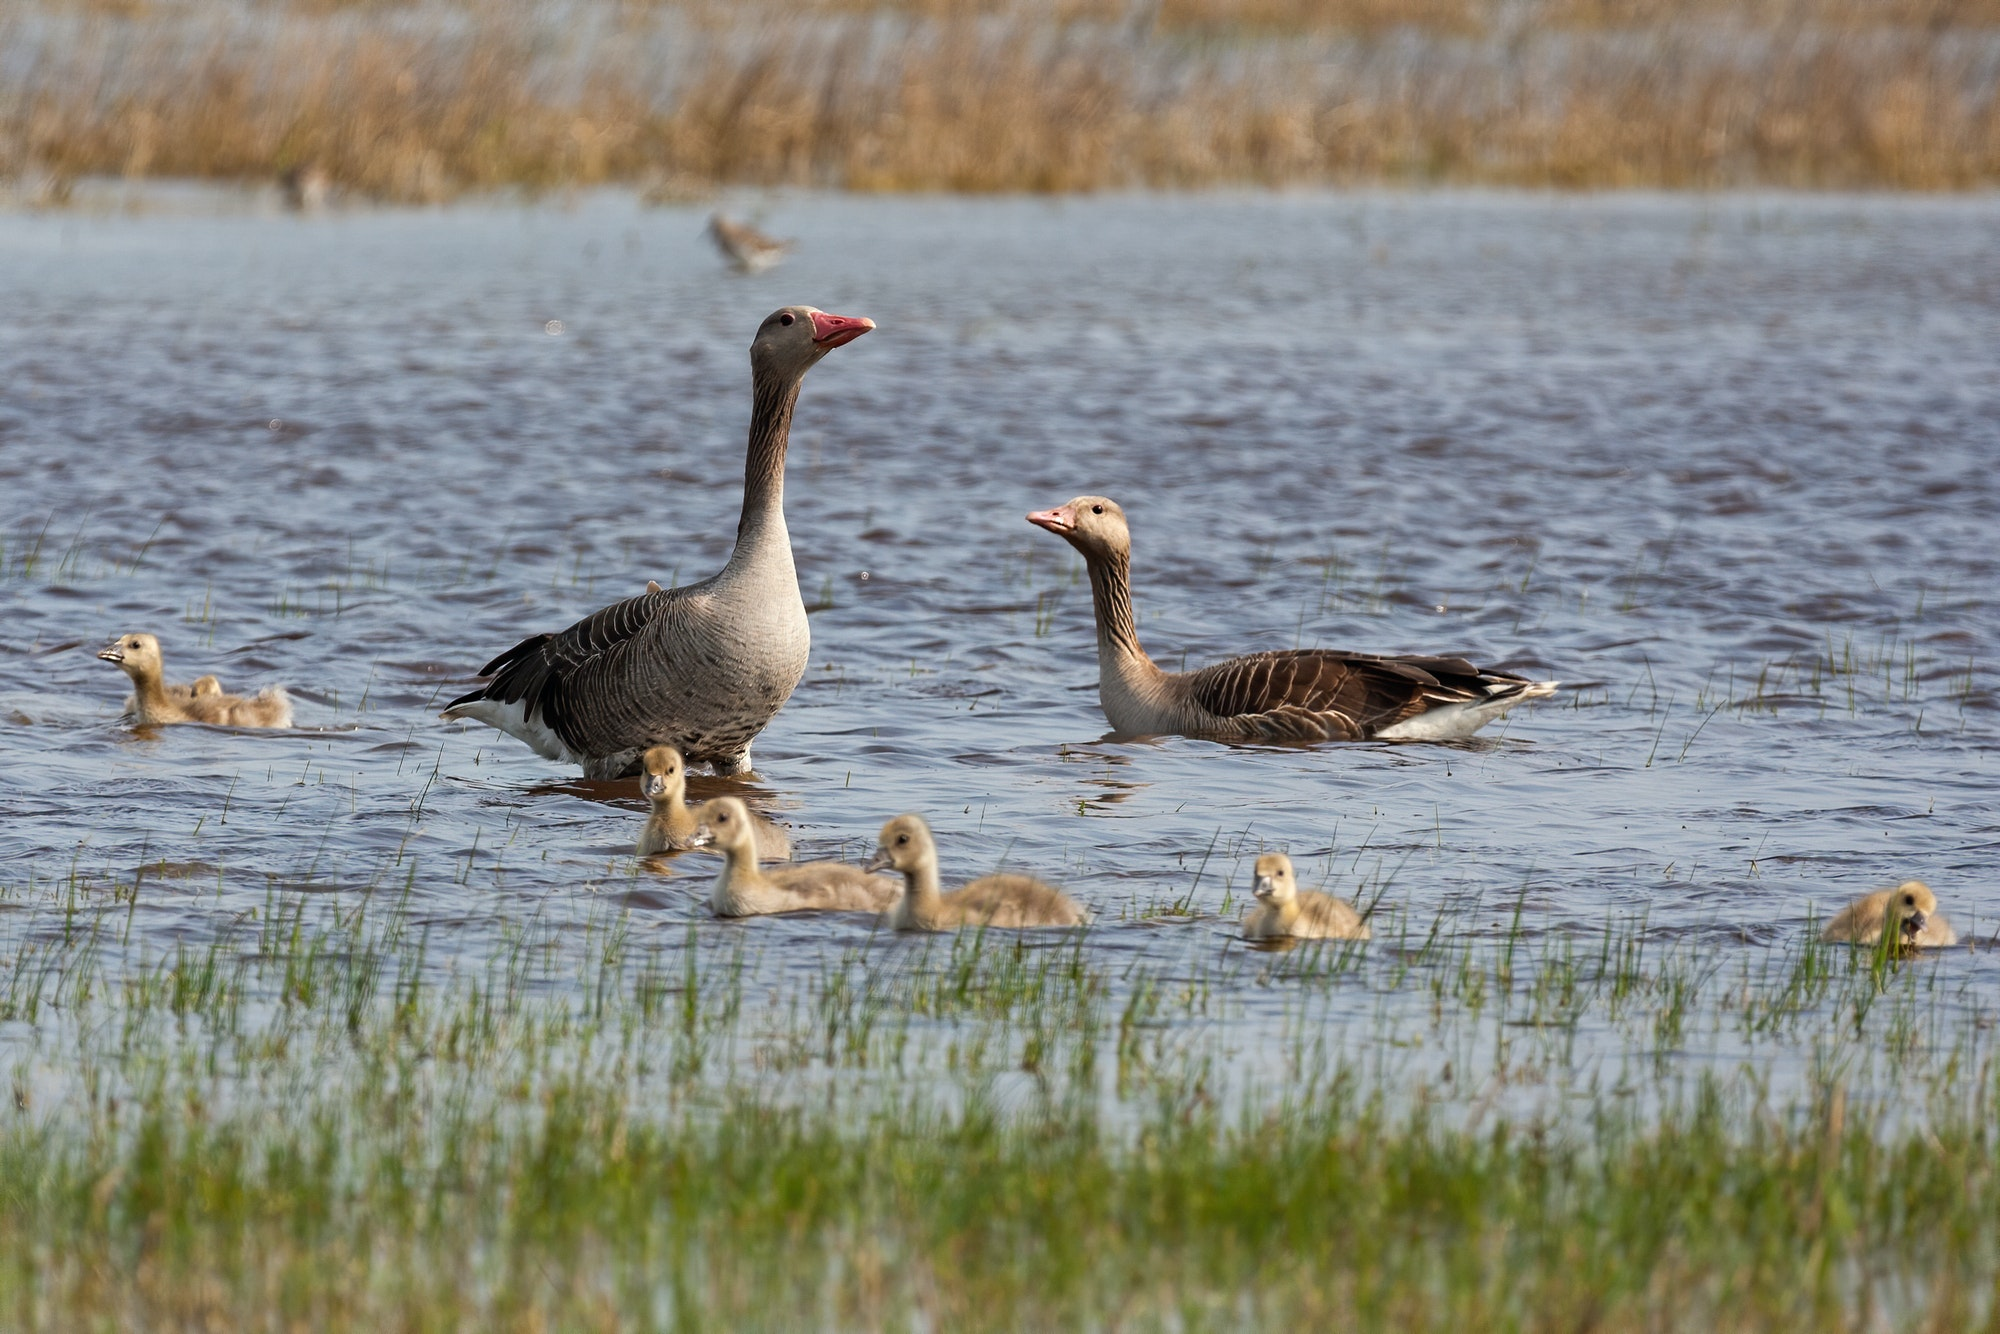 Greylag goose family swimming in lake during the summer